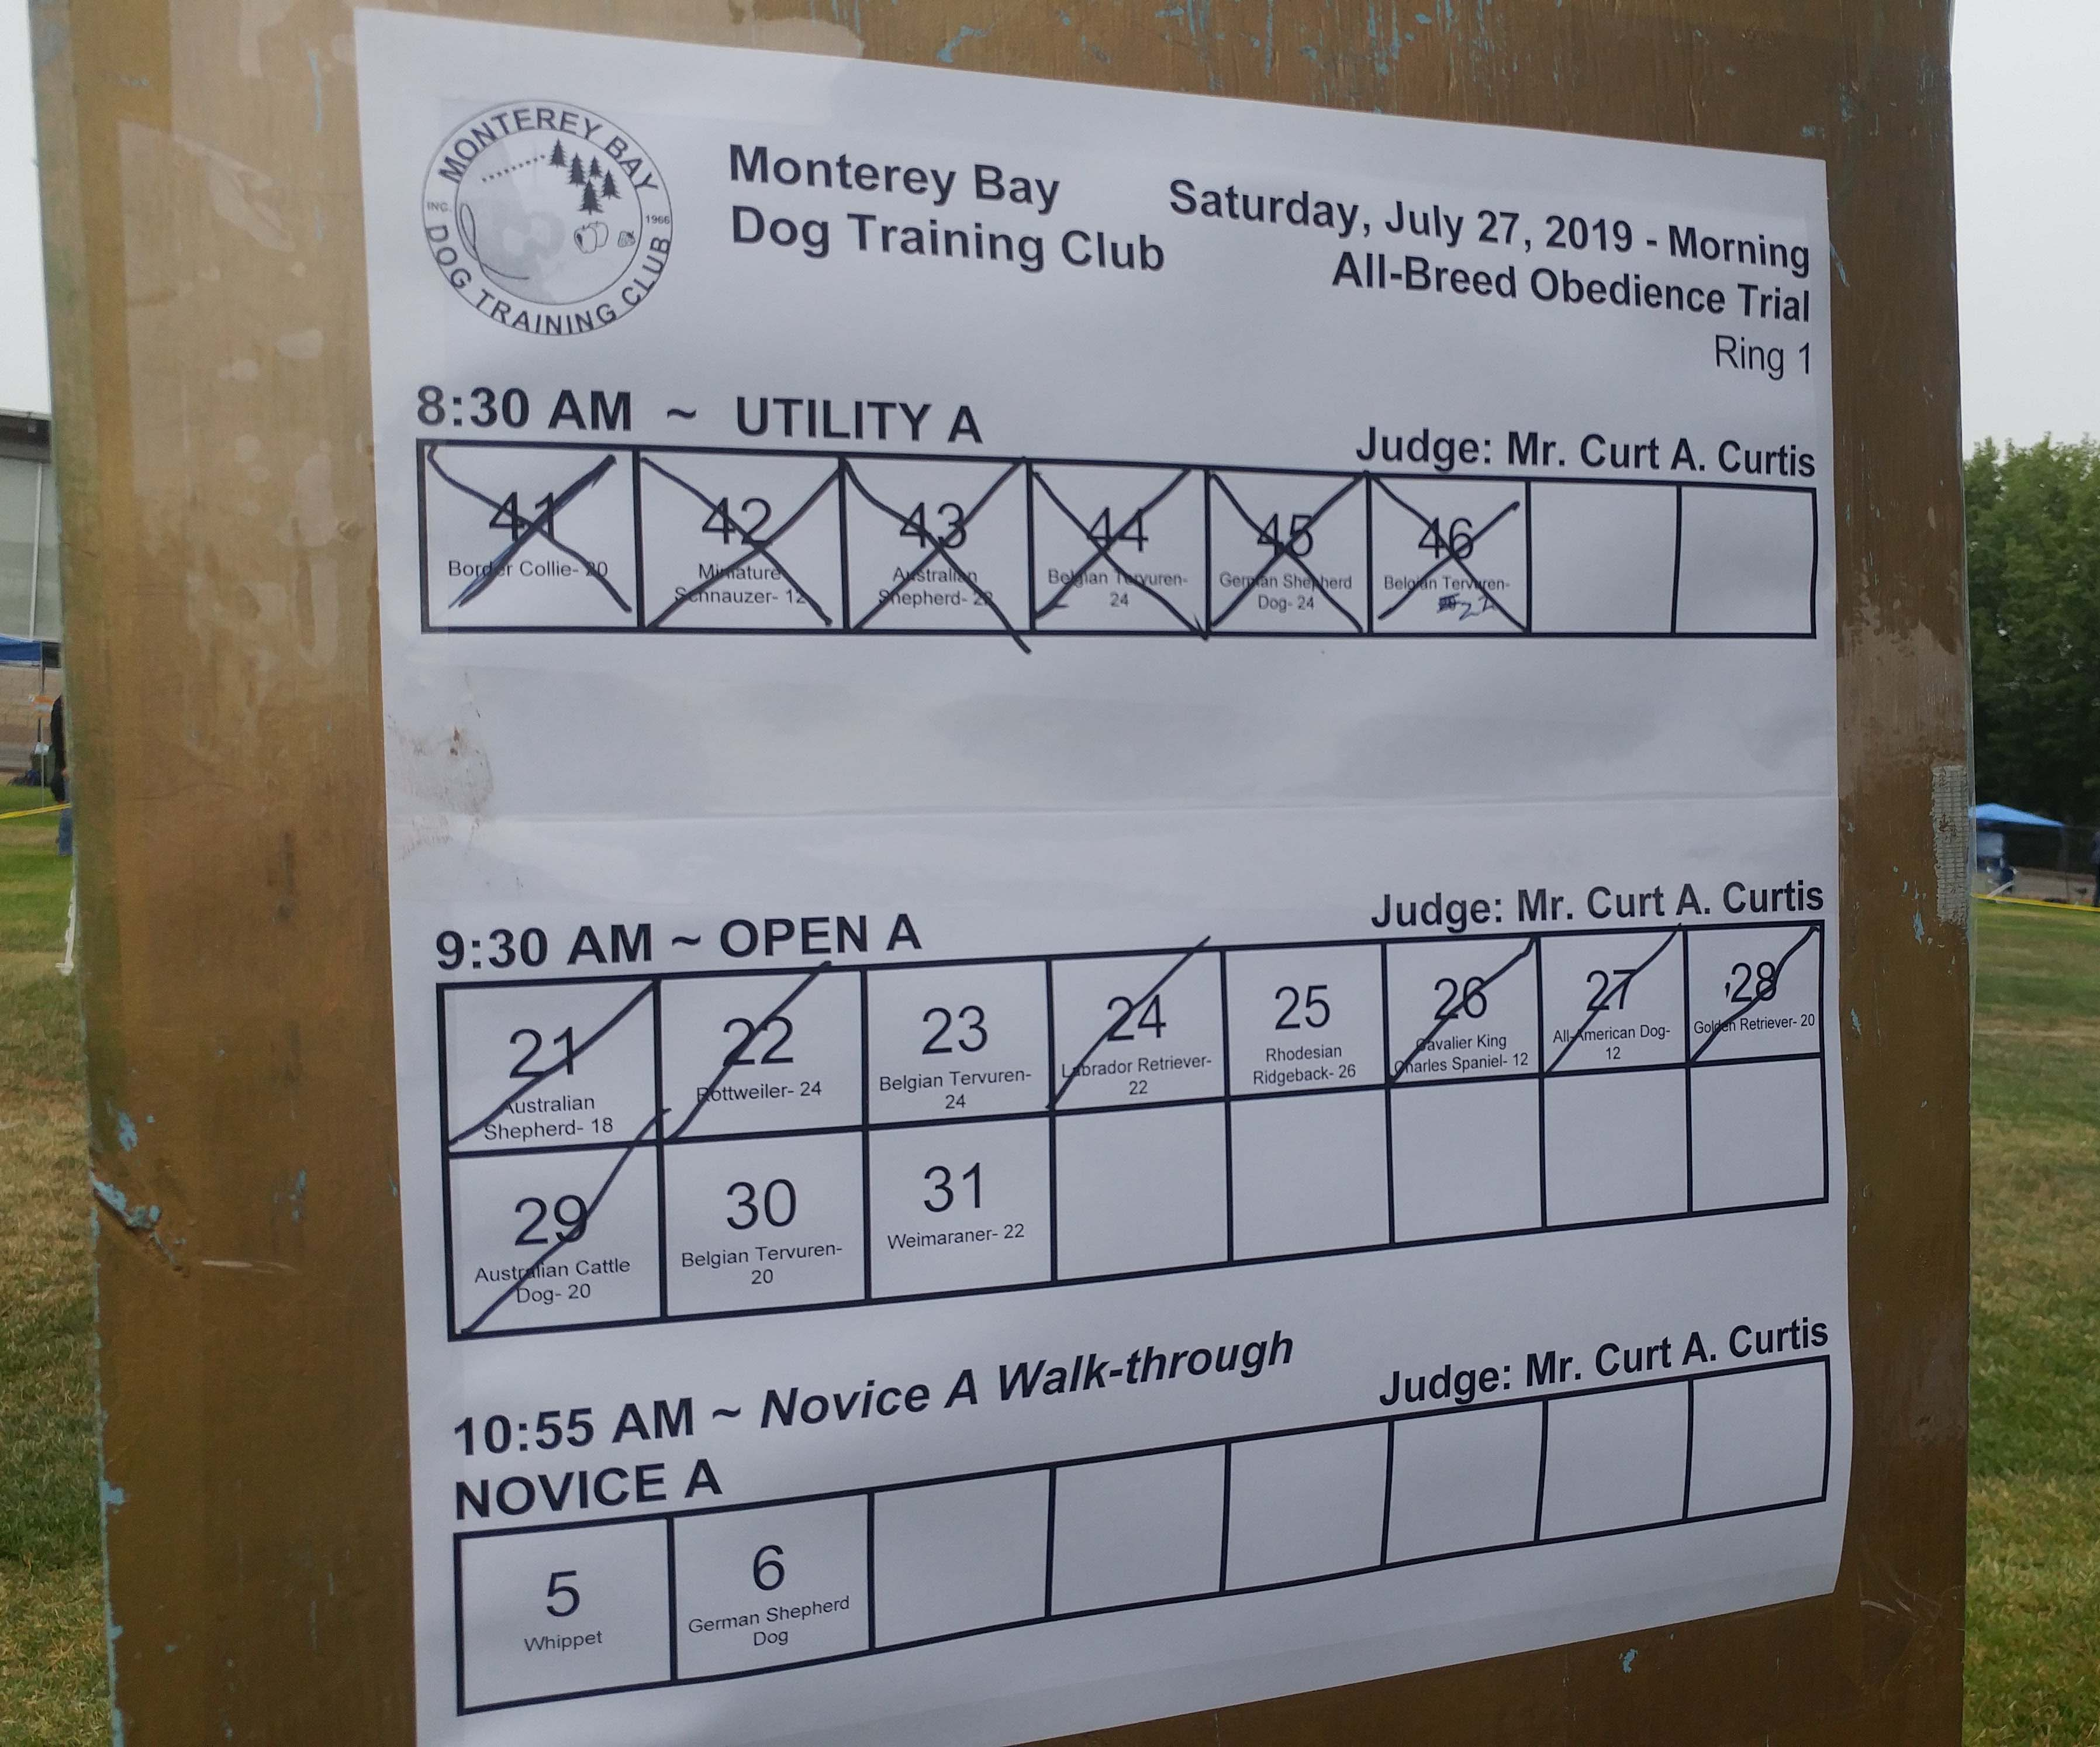 Photo of schedule that shows what dogs have checked in and which have already gone